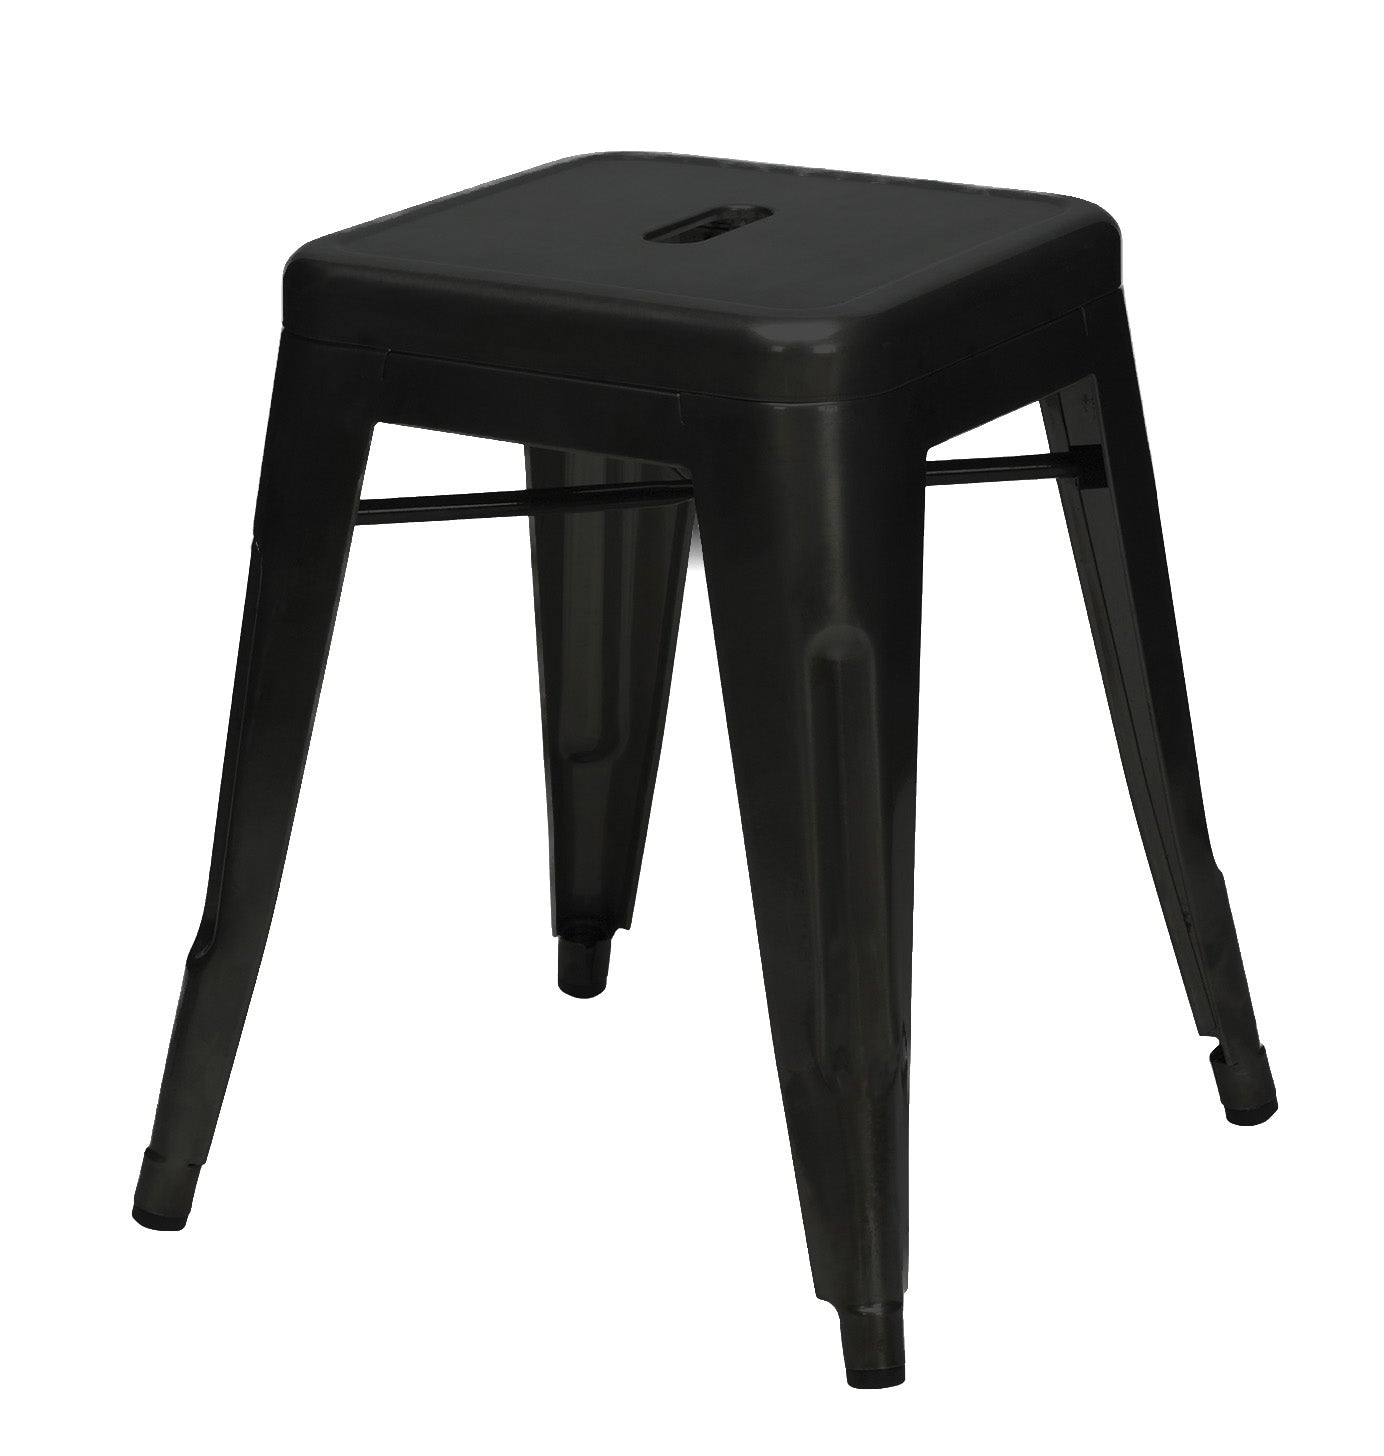 Stool/Chair MC-009-B -  كرسي - Shop Online Furniture and Home Decor Store in Dubai, UAE at ebarza